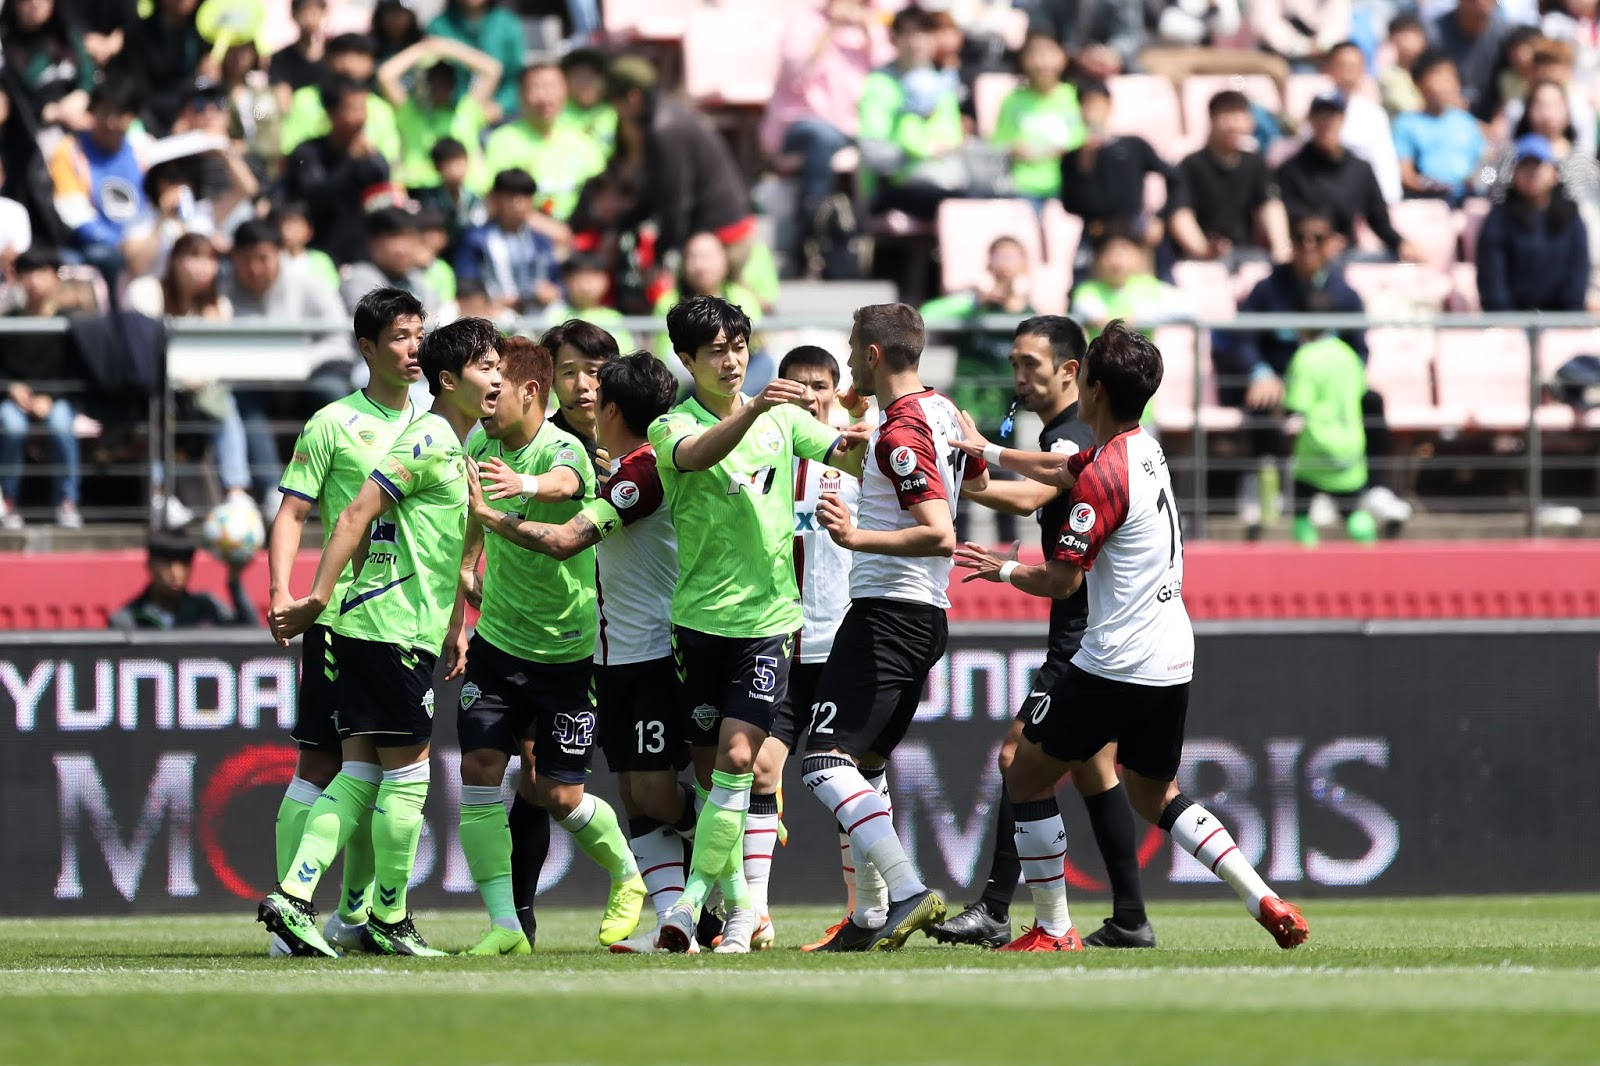 K League 1 Preview: Jeonbuk Hyundai Motors vs FC Seoul